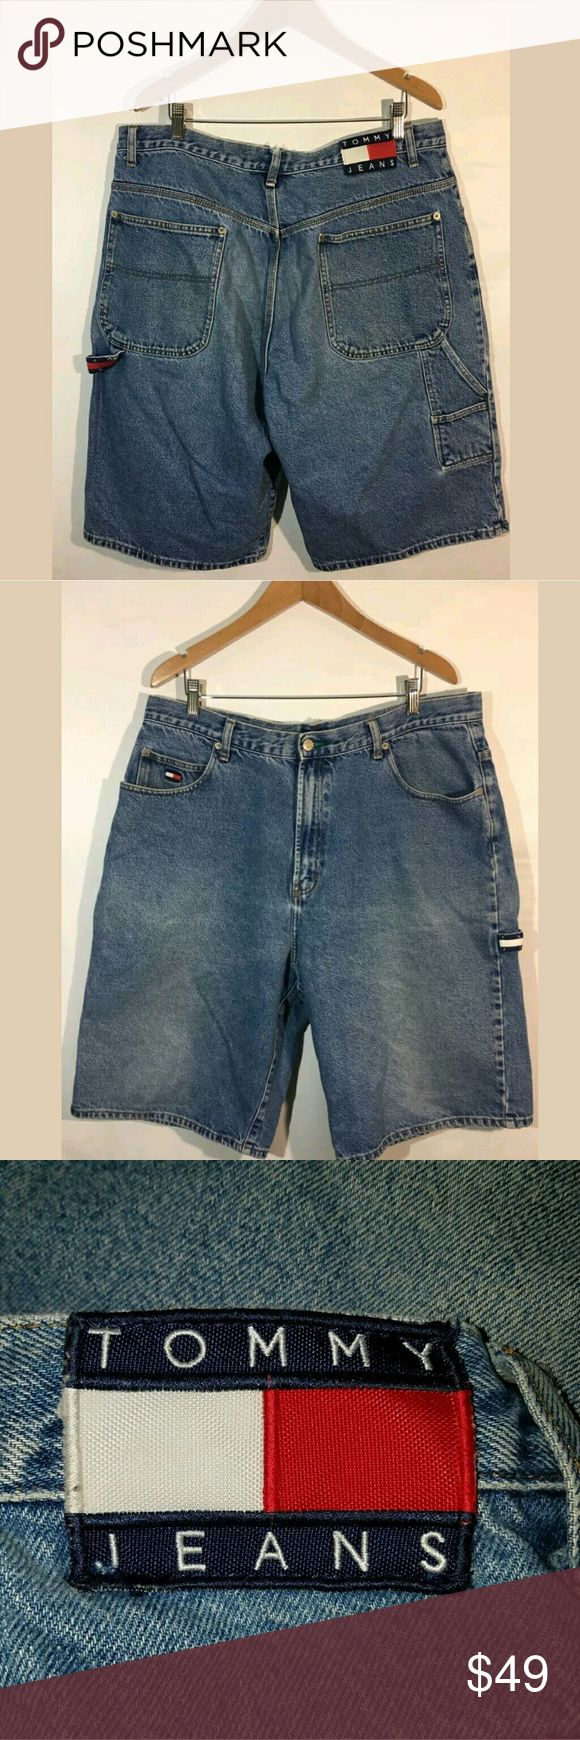 Tommy Hilfiger Shorts Men's Size 38 Denim Retro V Tommy Hilfiger Shorts Men's Size 38 Denim Retro Vintage Blue  Very good used condition. Fraying on one of the belt loops.   39 inch waist.  14.5 inch rise.  52 inch hips.  12.5 inch inseam.  26 inch outseam.   Pre-owned item condition. Item has little to no signs of wear unless specifically stated. Please carefully review item details and uploaded pictures for details of this item before offering or buying. Item is functional and ready for…